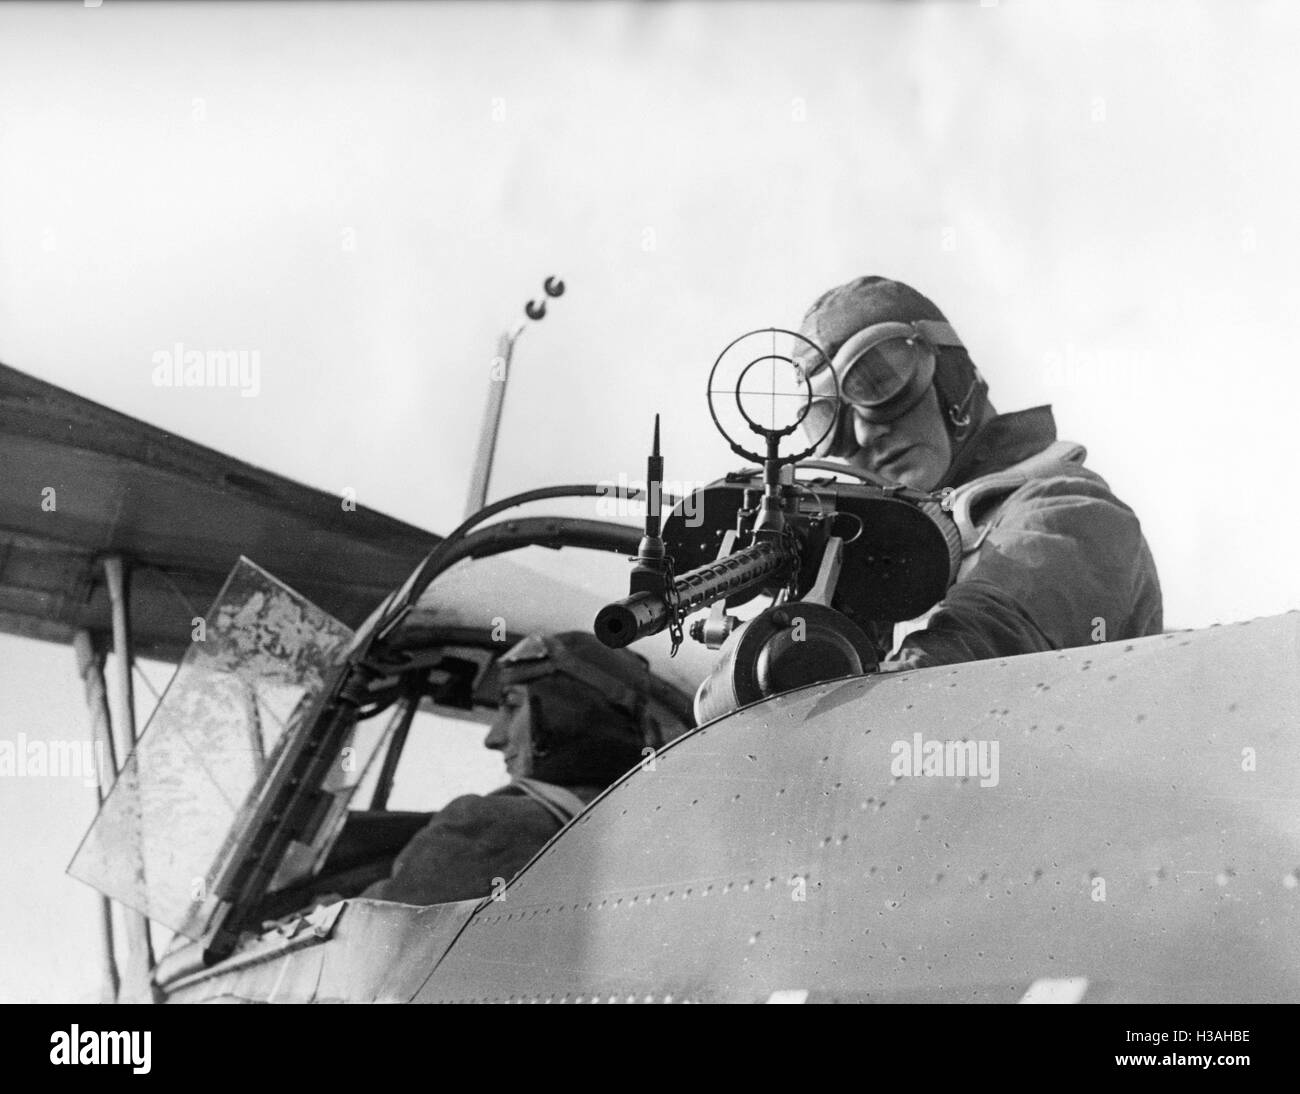 An observer and the pilot of an Hs 126 during an exercise in 1939 - Stock Image